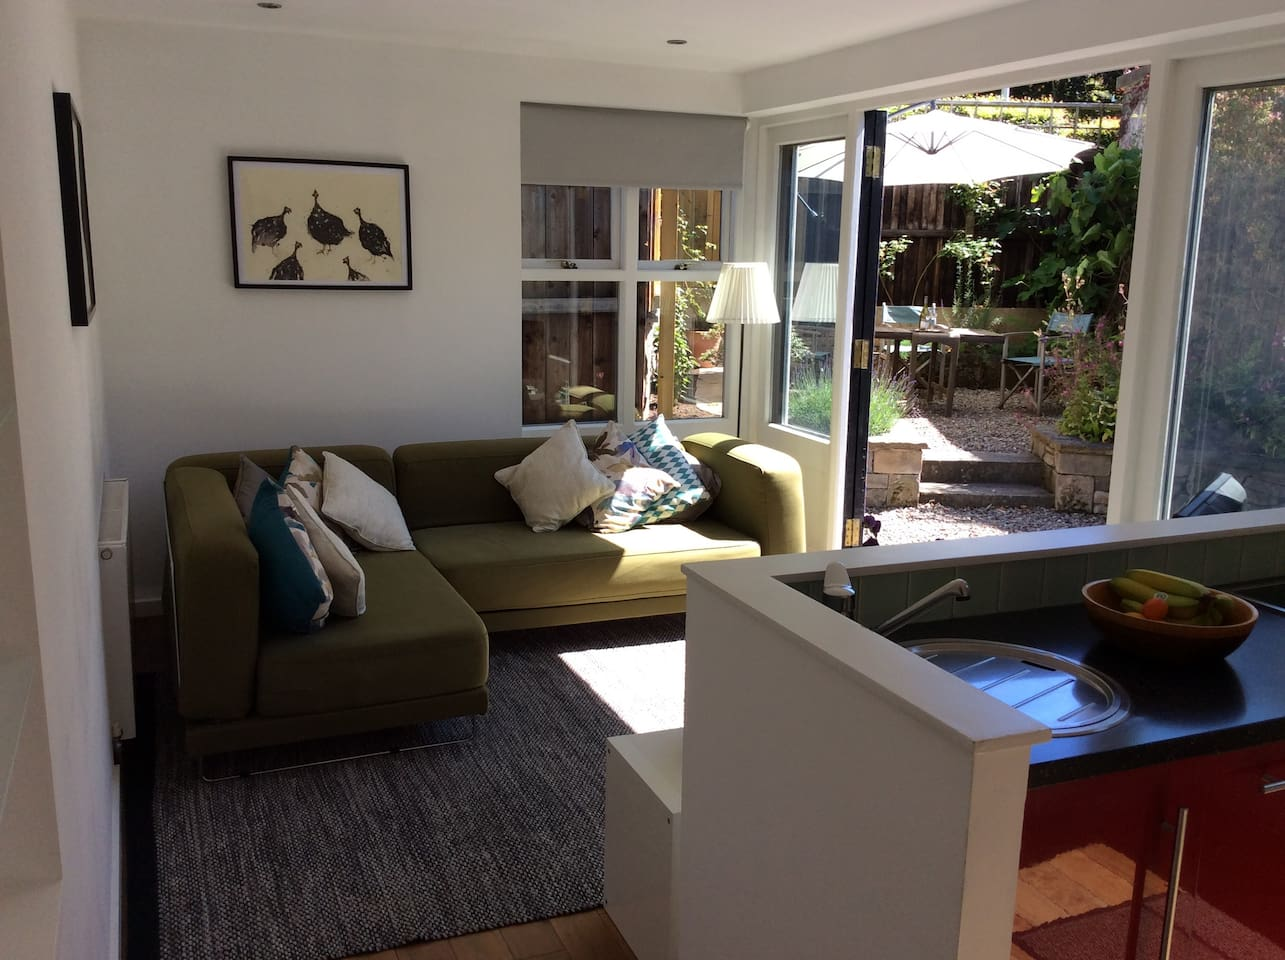 Fully furnished open plan garden flat with day room leading on to secluded private garden.